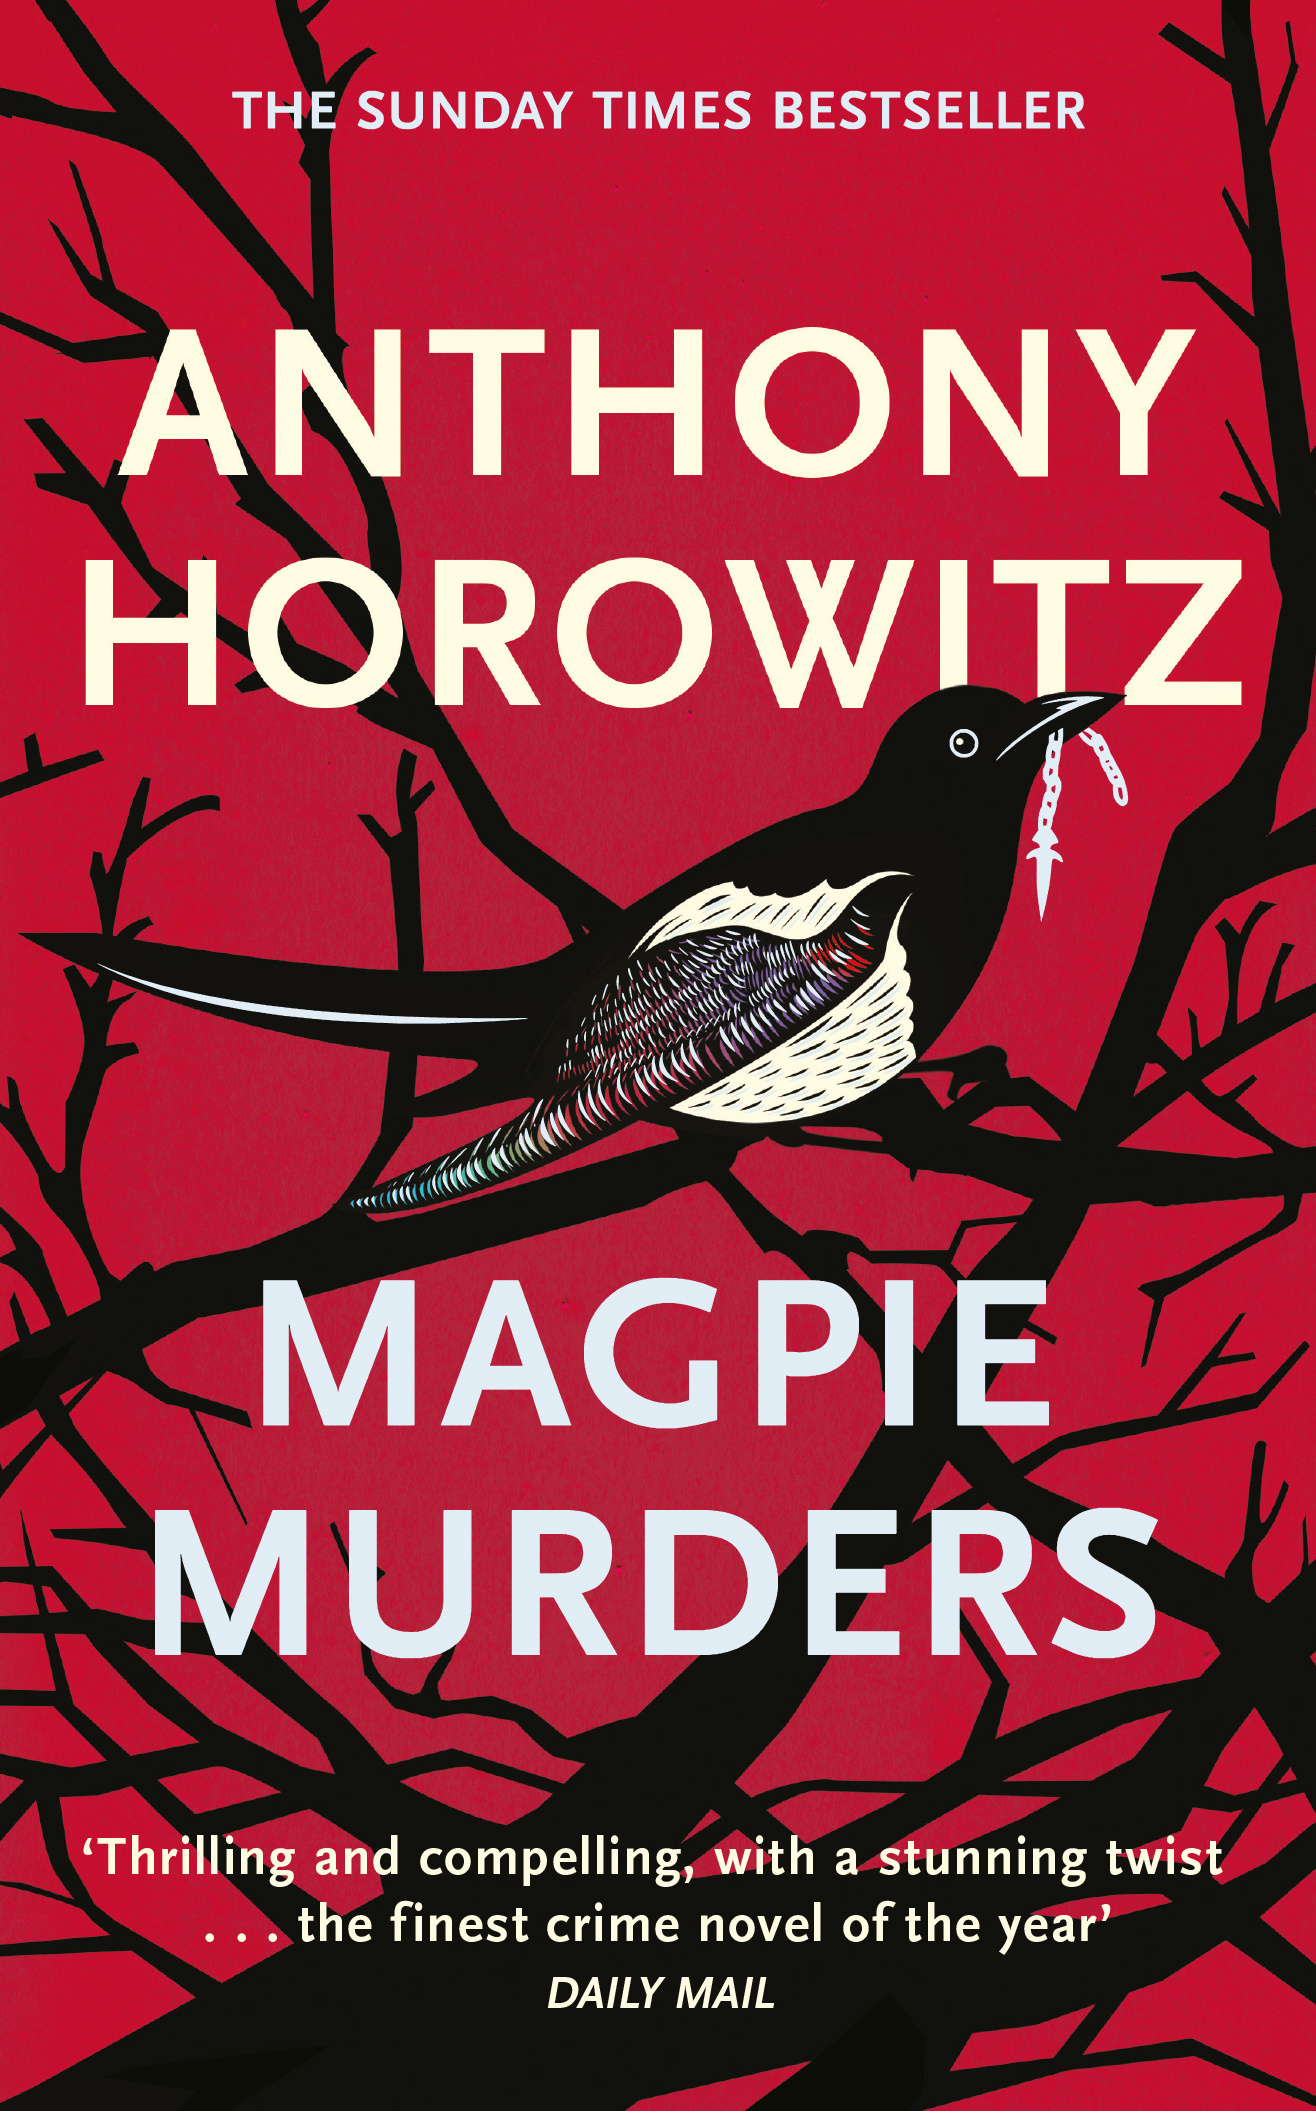 Magpie Murders: the Sunday Times bestseller crime thriller with a fiendish twist by Anthony Horowitz, ISBN: 9781409158387